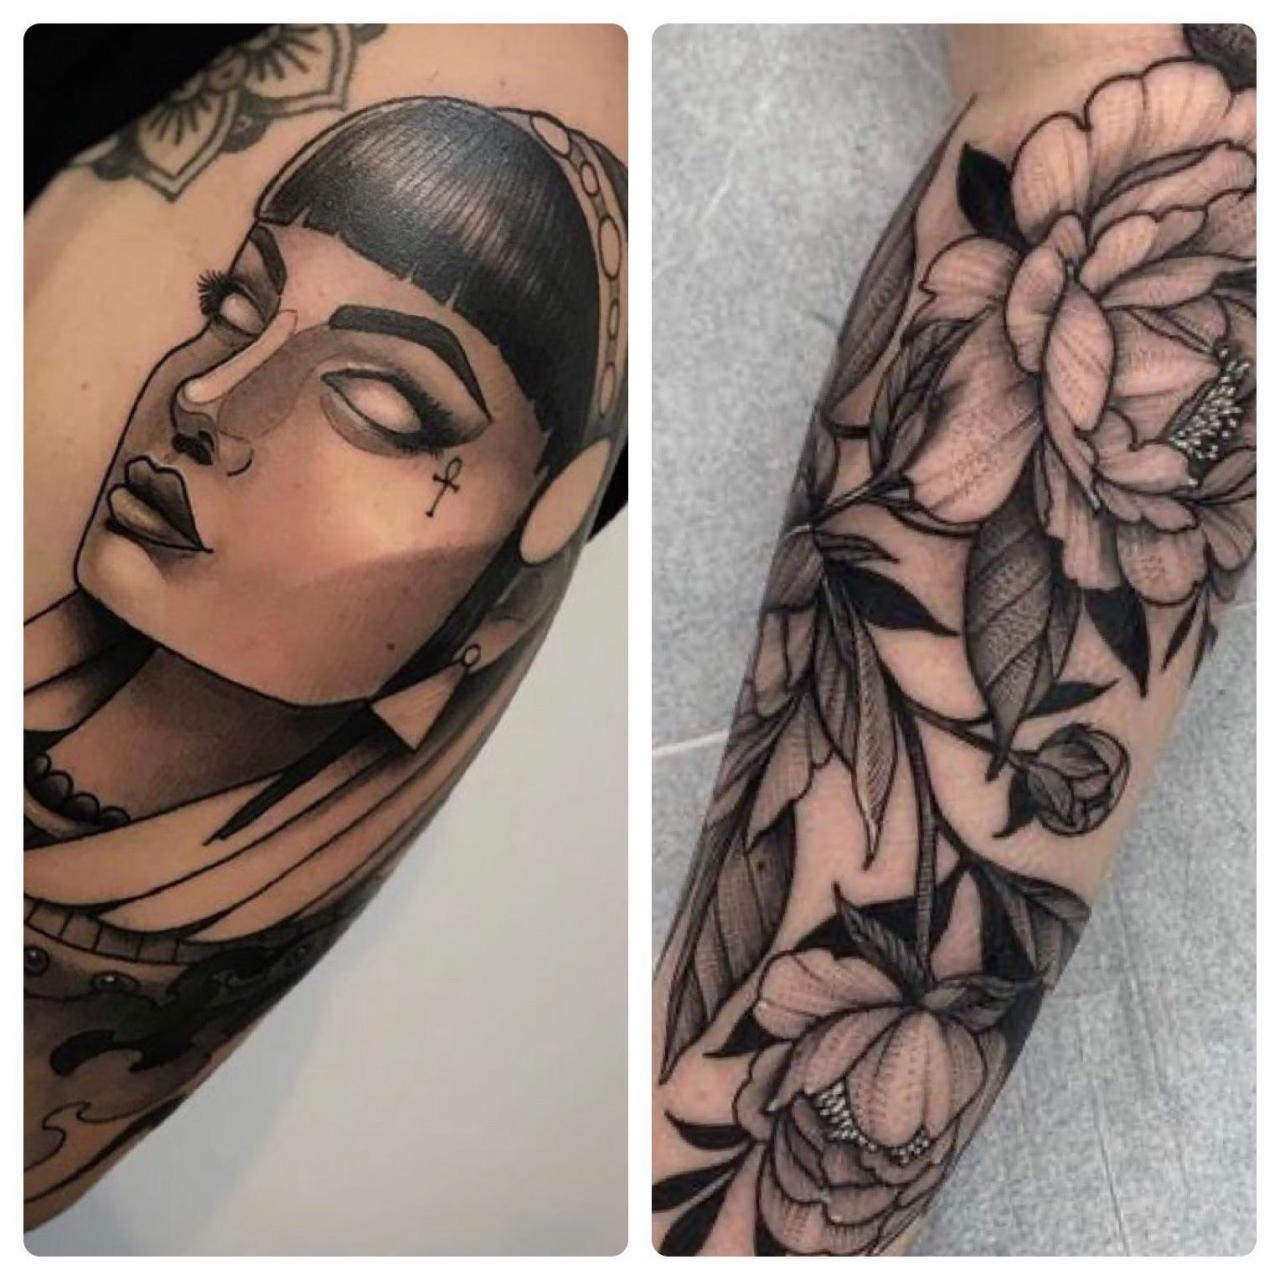 I'm wanting a full arm sleeve incorporating something similar to these two. Like cleopatra on my bicep and the rest a floral design. Would this look okay? Obviously I'm not going to copy another artists design, I'm just looking to get something along the same lines. I'm open to any suggestions ☺️